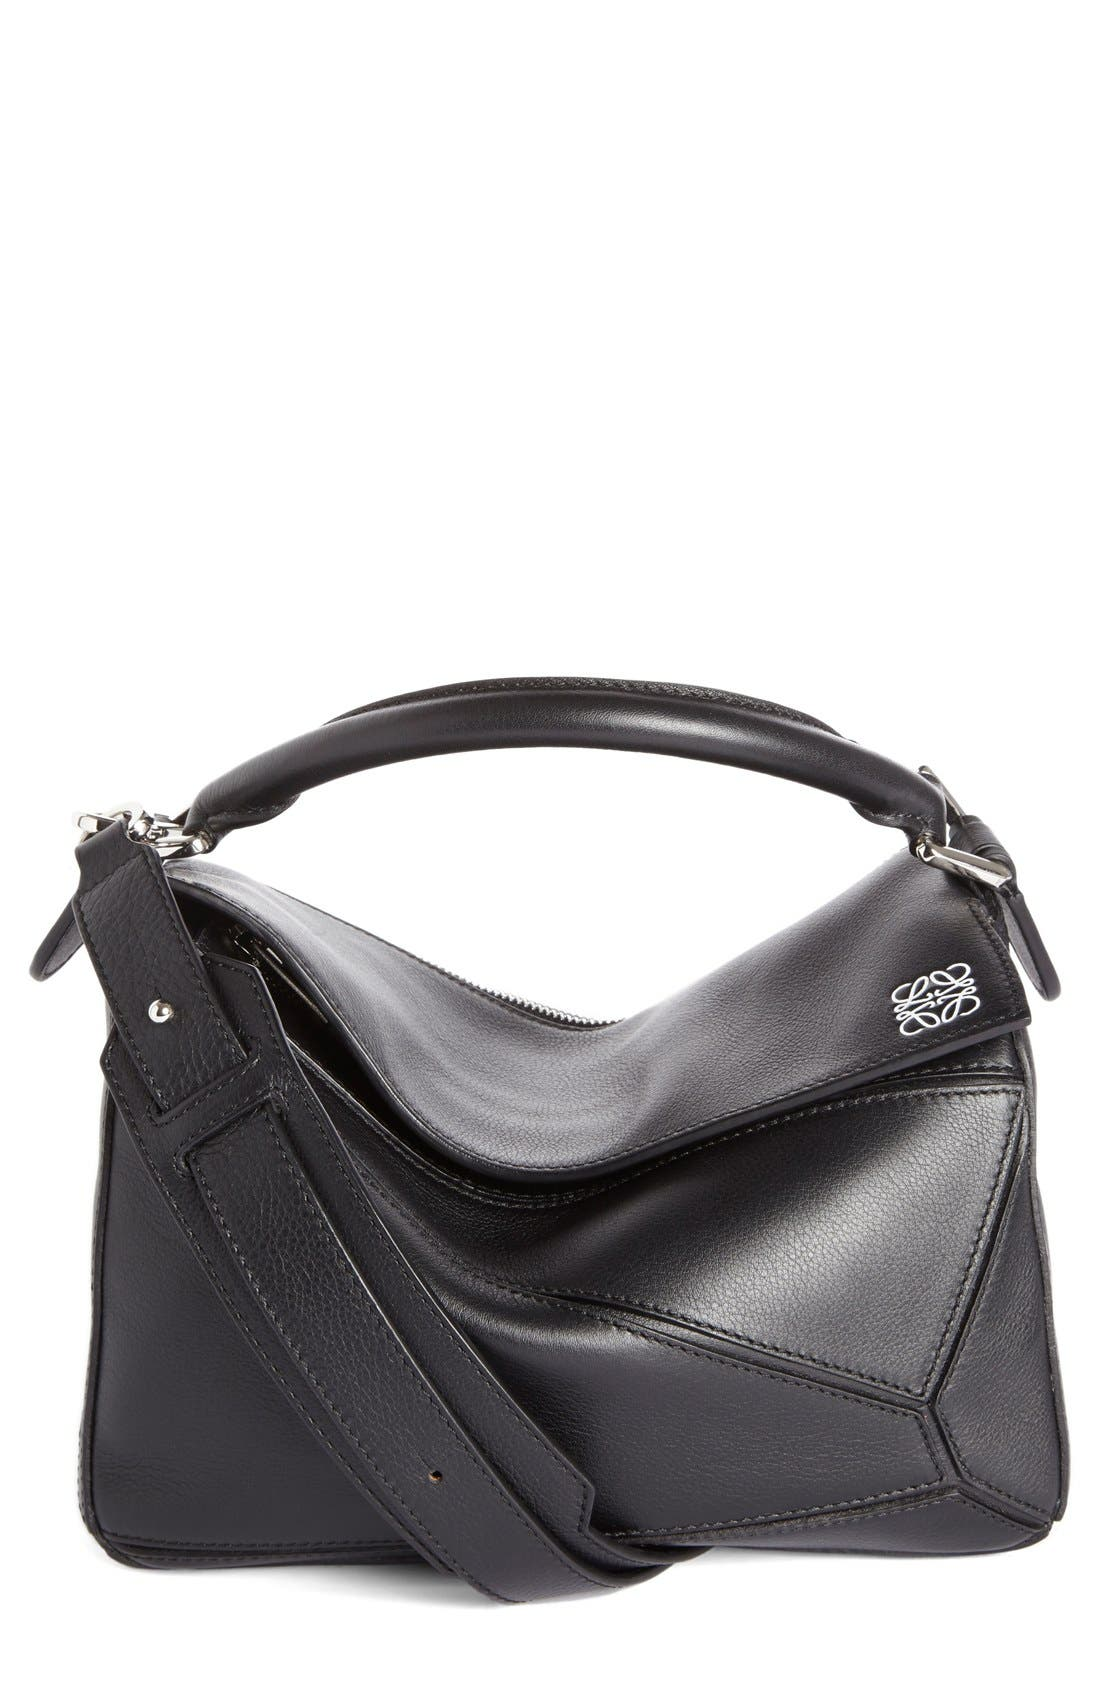 Alternate Image 1 Selected - Loewe 'Small Puzzle' Calfskin Leather Bag